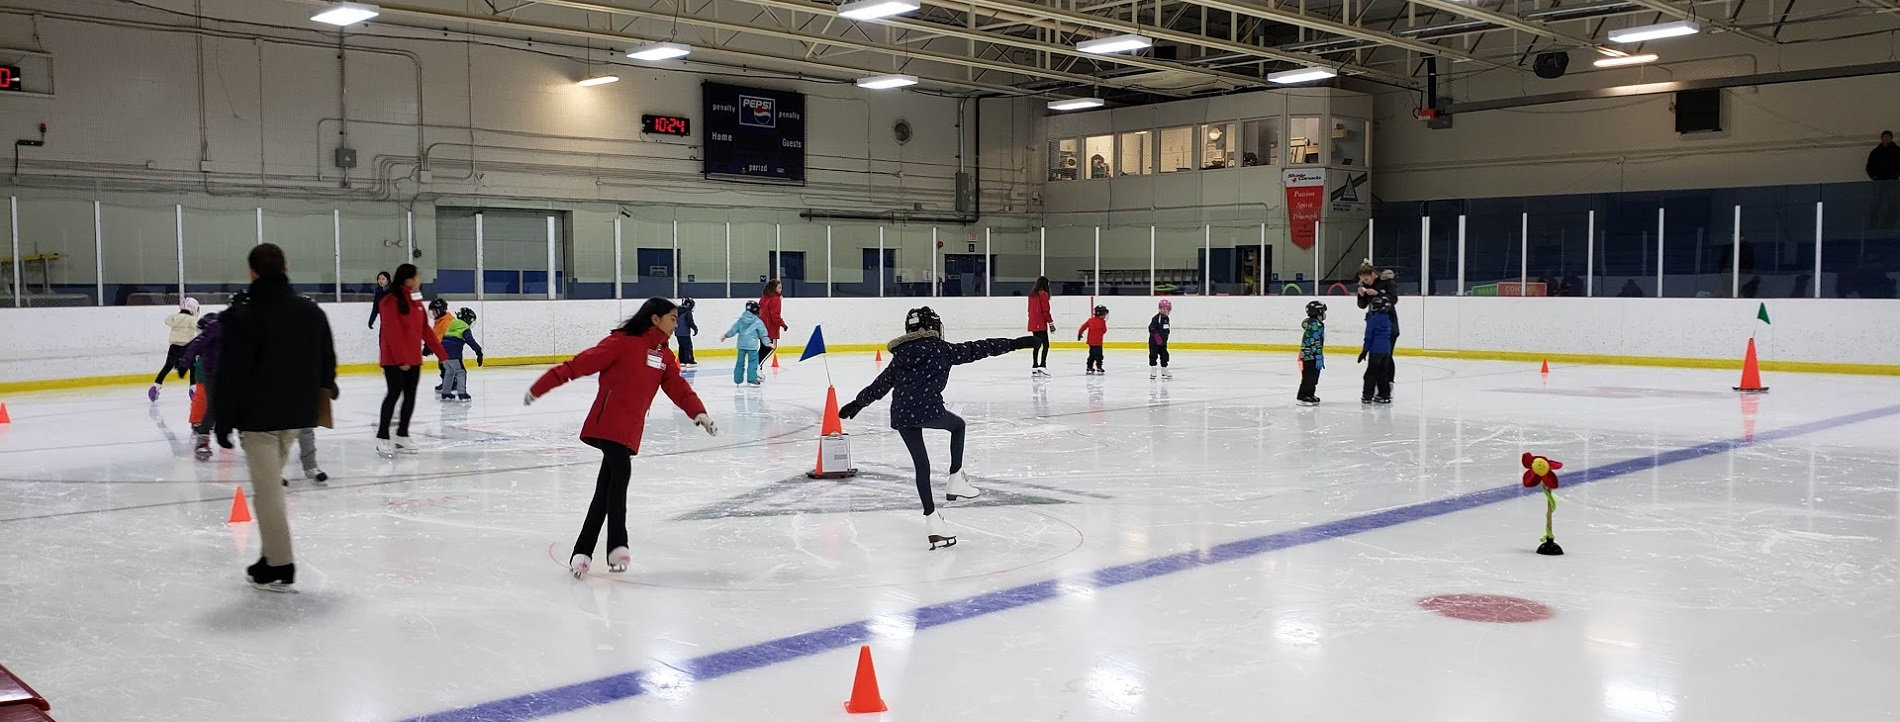 Our Learn to Skate program welcomes skaters of all types